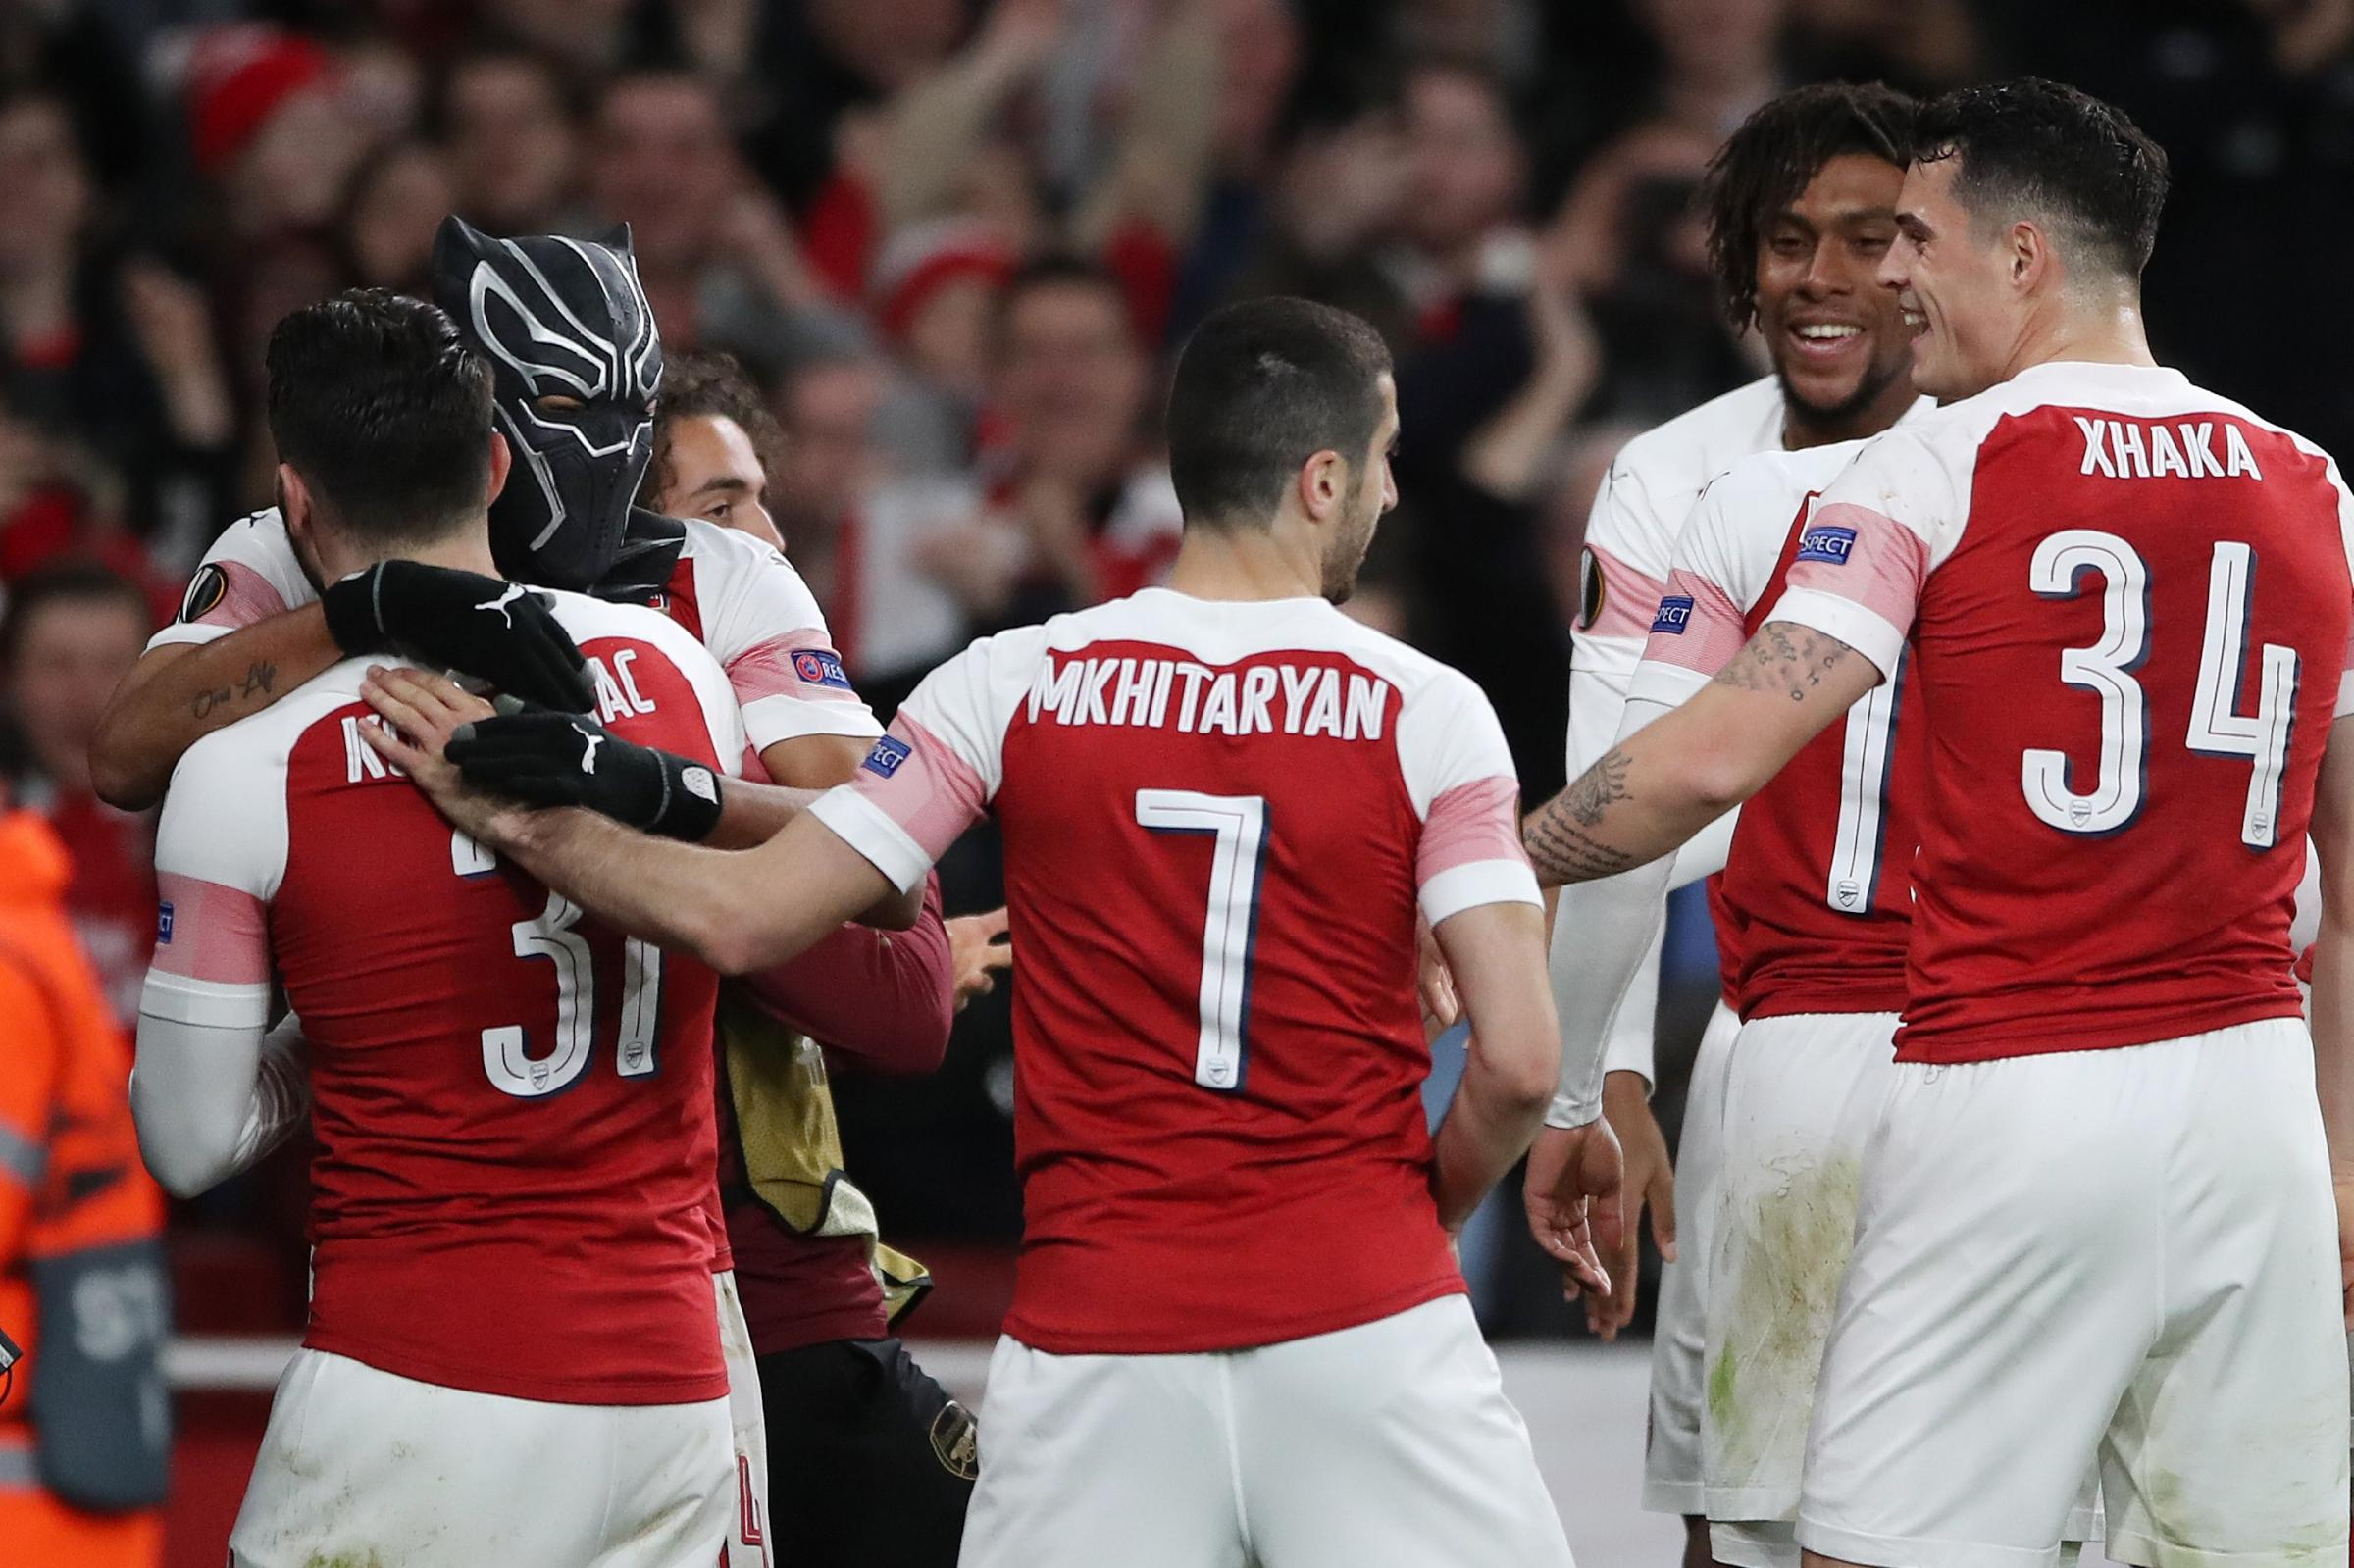 Pierre-Emerick Aubameyang donned a Black Panther mask after scoring one of the goals that sent Arsenal into the Europa League quarter-finals